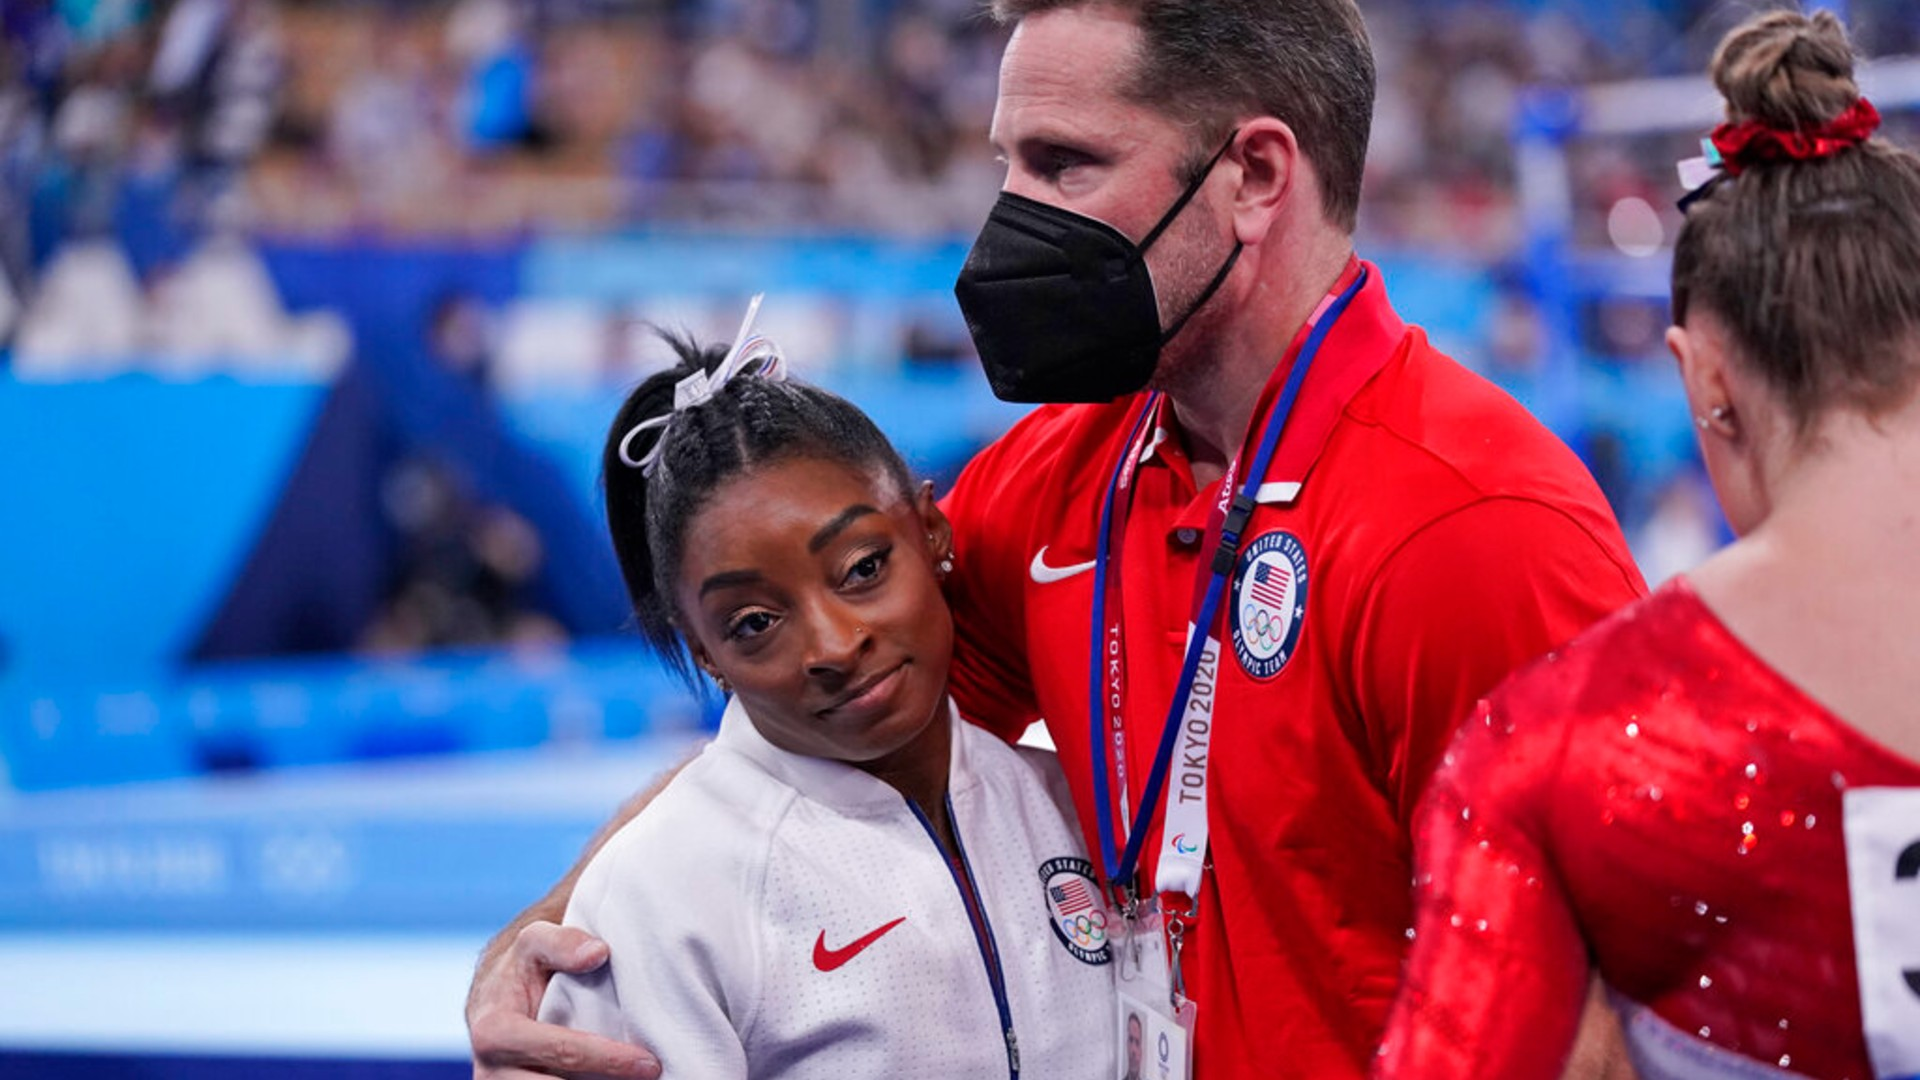 Coach Laurent Landi embraces Simone Biles, after she exited the team final with apparent injury, at the 2020 Summer Olympics, Tuesday, July 27, 2021, in Tokyo. (AP Photo/Gregory Bull)